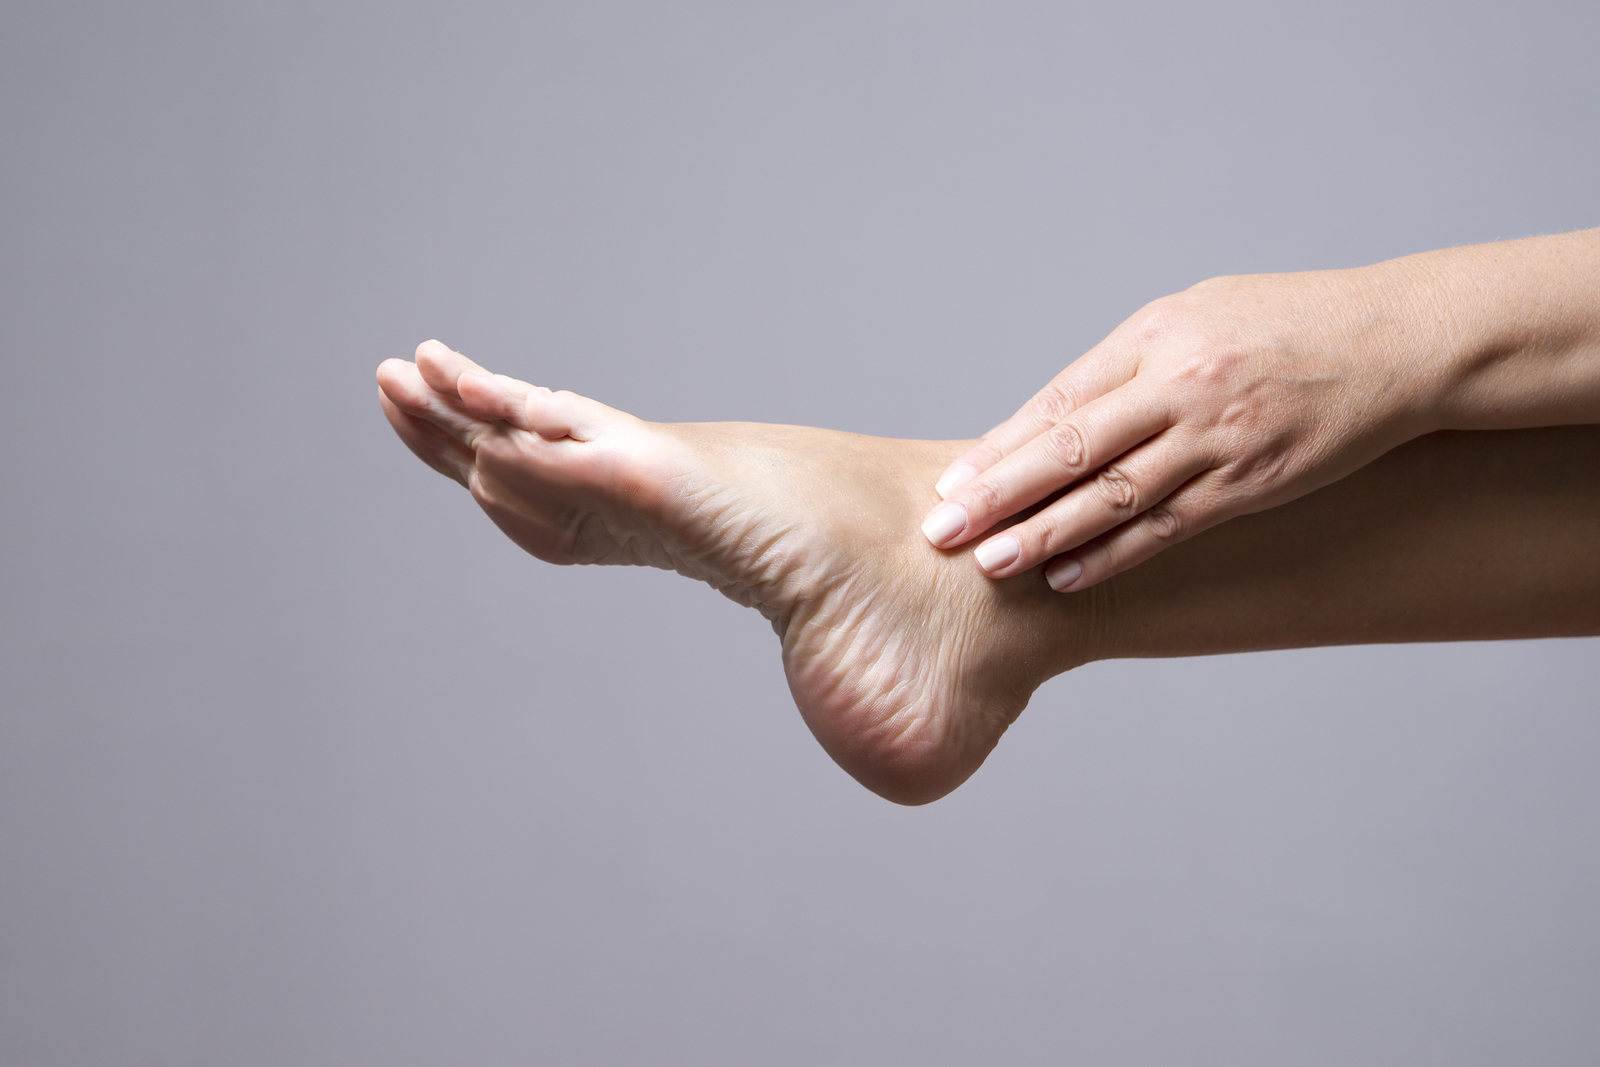 Pain in the foot. Massage of female feet on a gray background